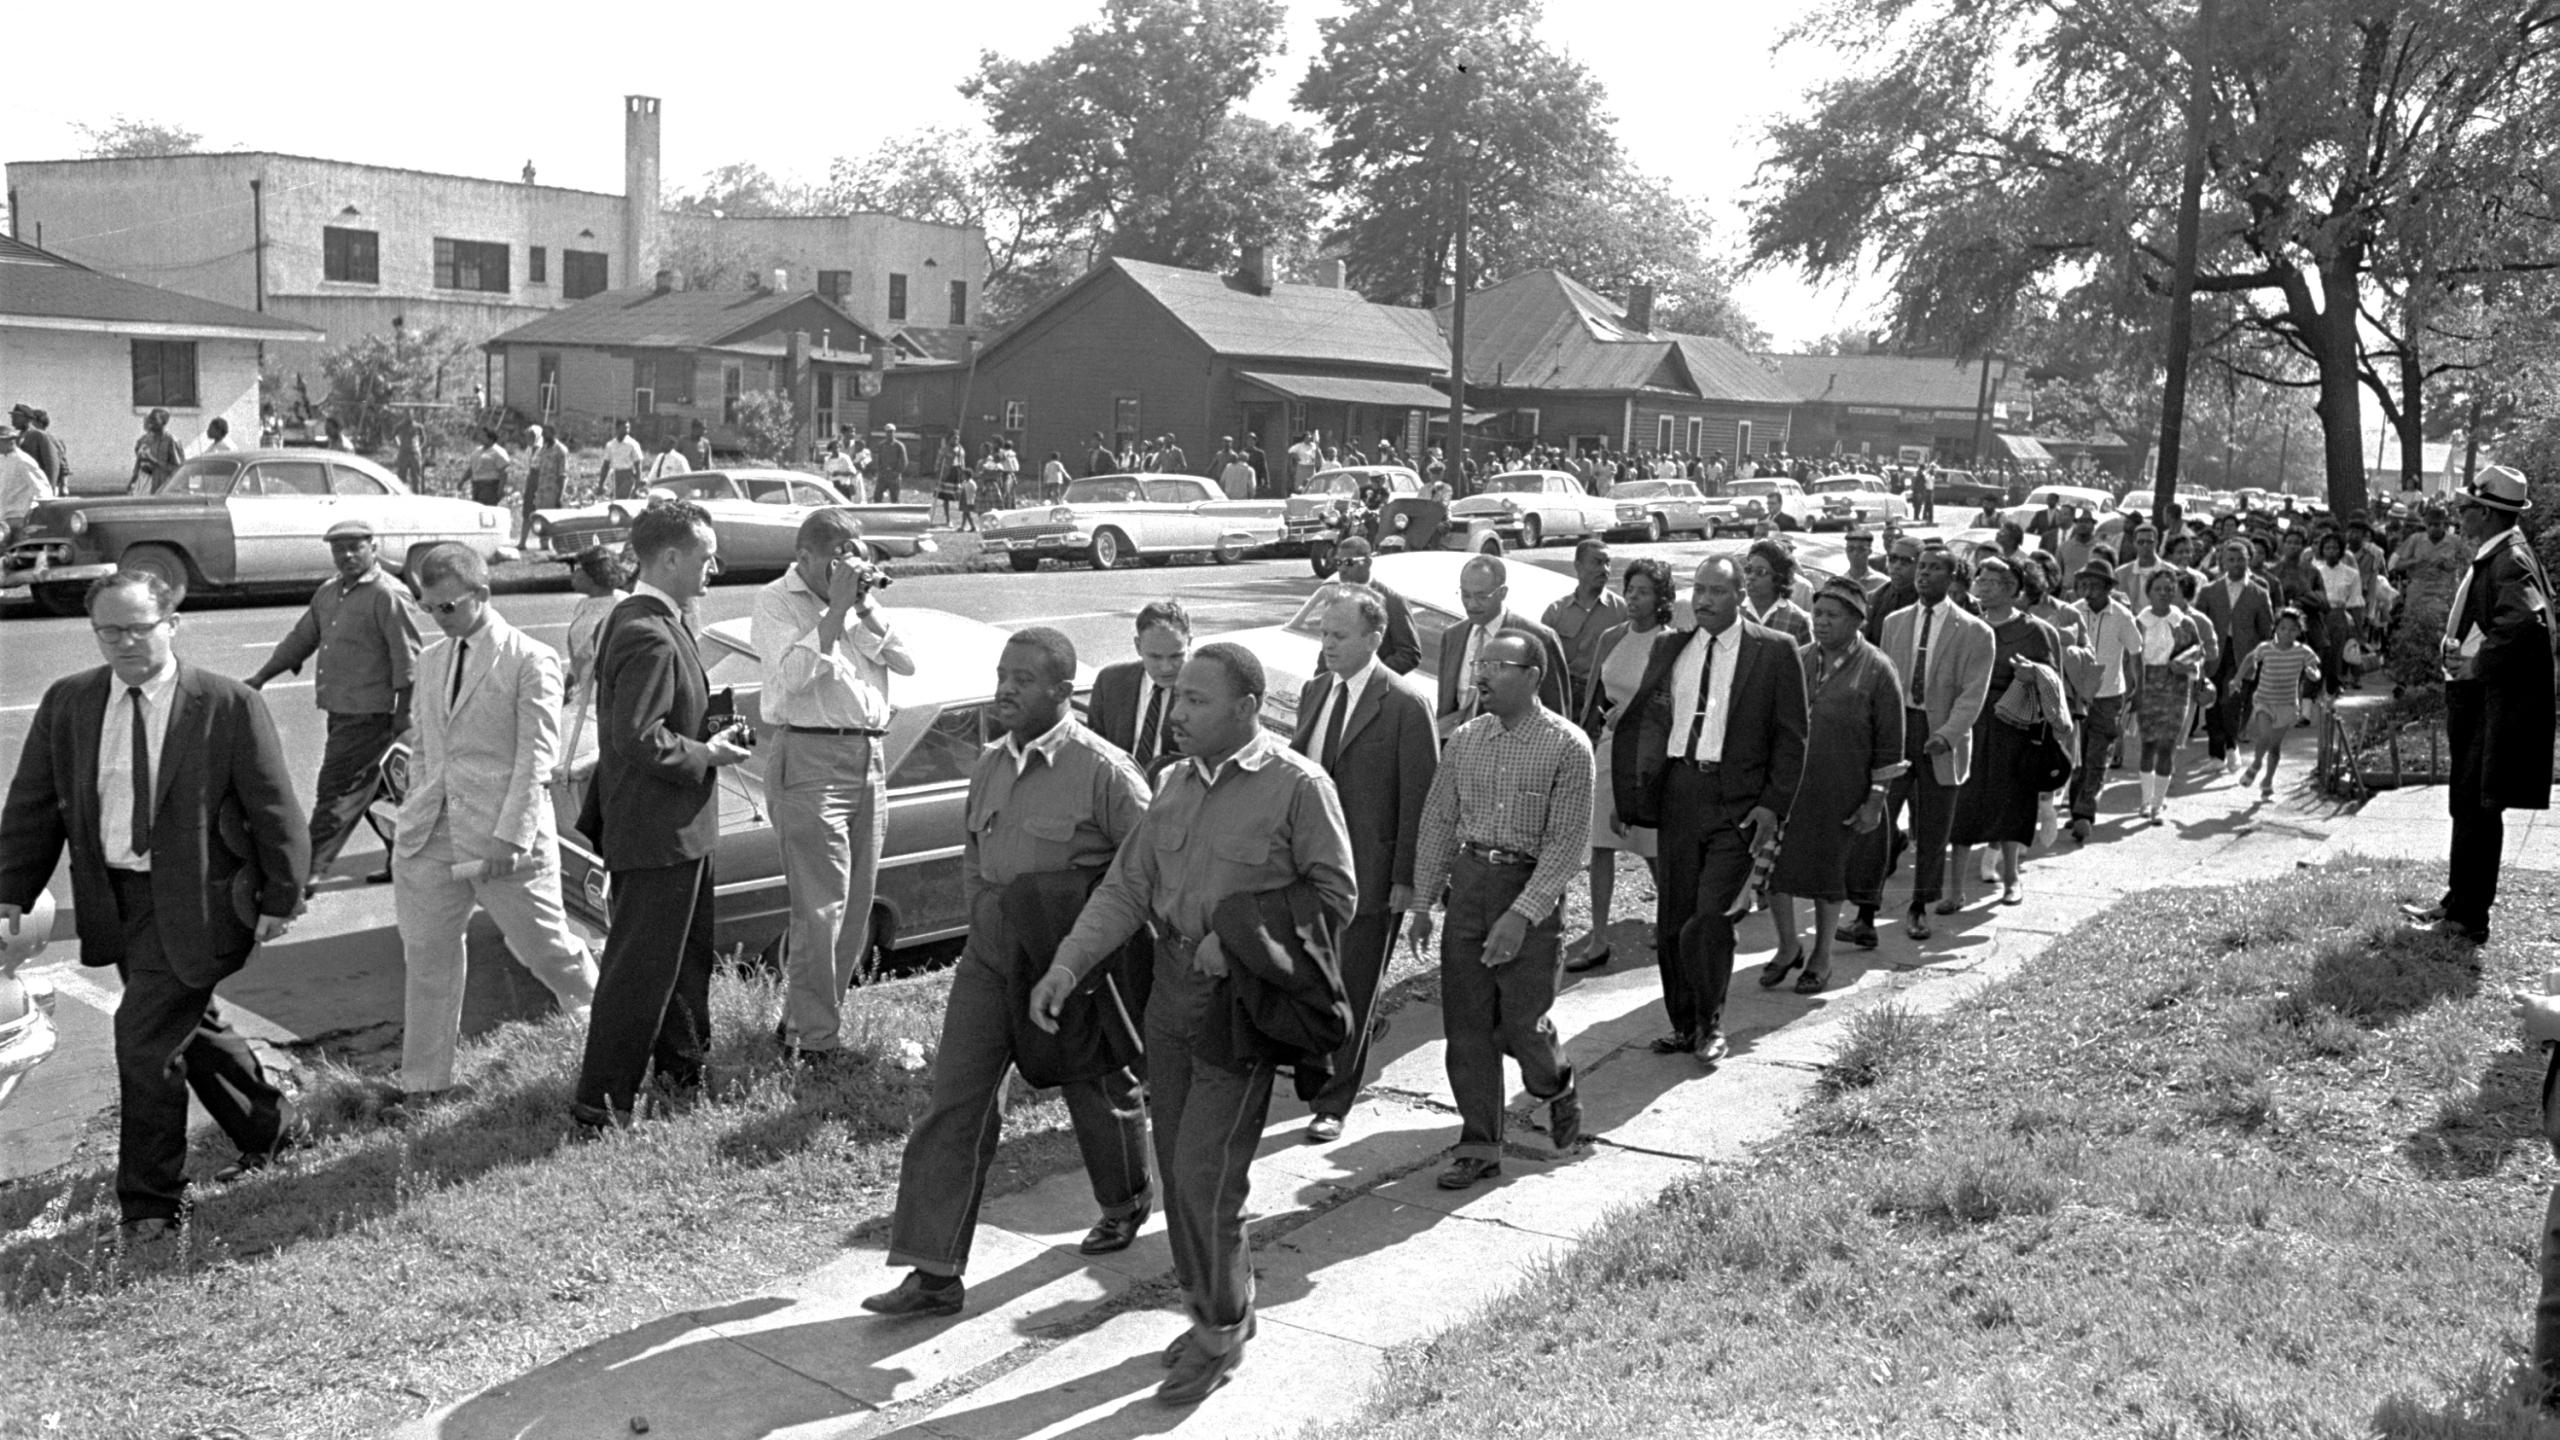 Martin Luther King Jr., Ralph David Abernathy, Birmingham march